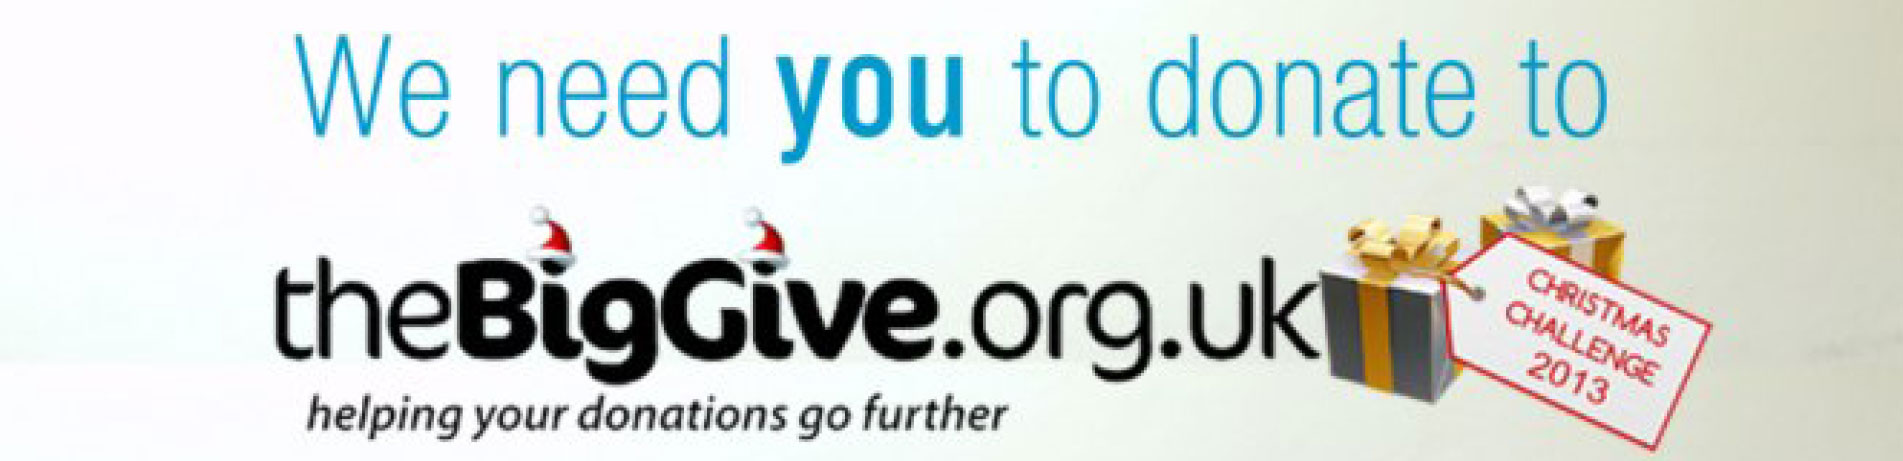 Masthead for the 2013 Big Give Christmas Challenge fundraising campaign